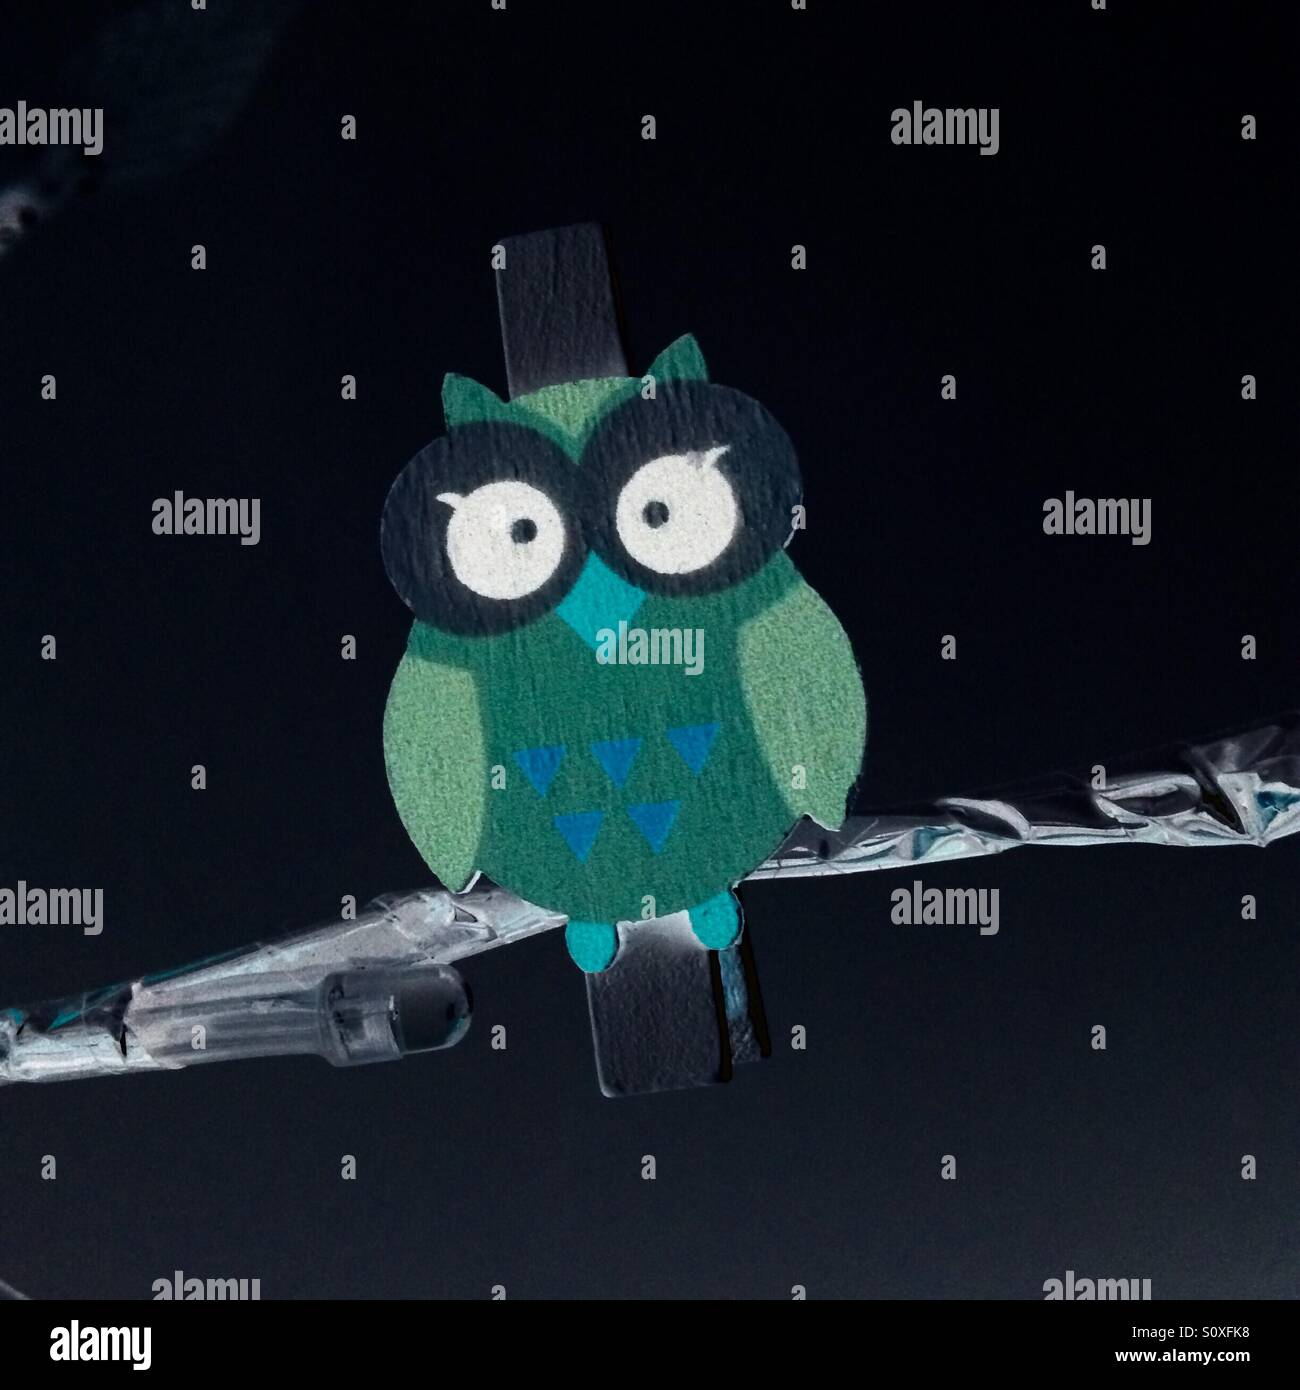 Weird owl thing - Stock Image